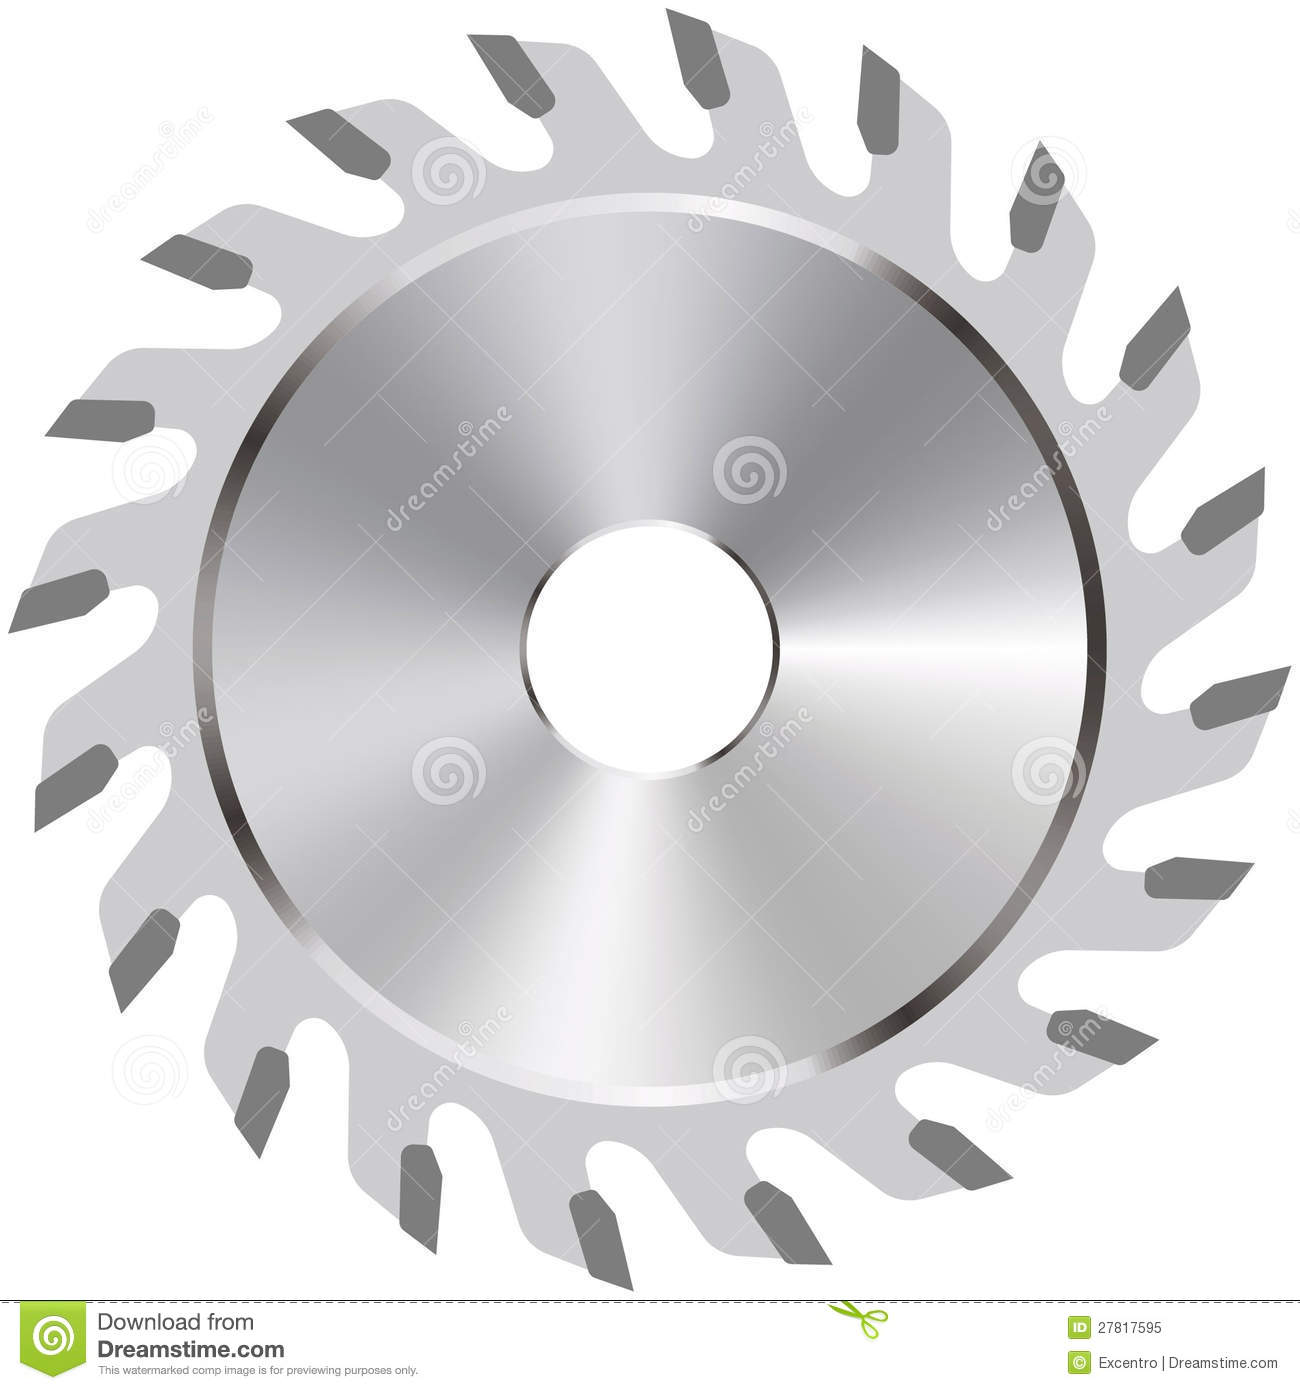 Circular Saw Blade Royalty Free Stock Photo   Image  27817595